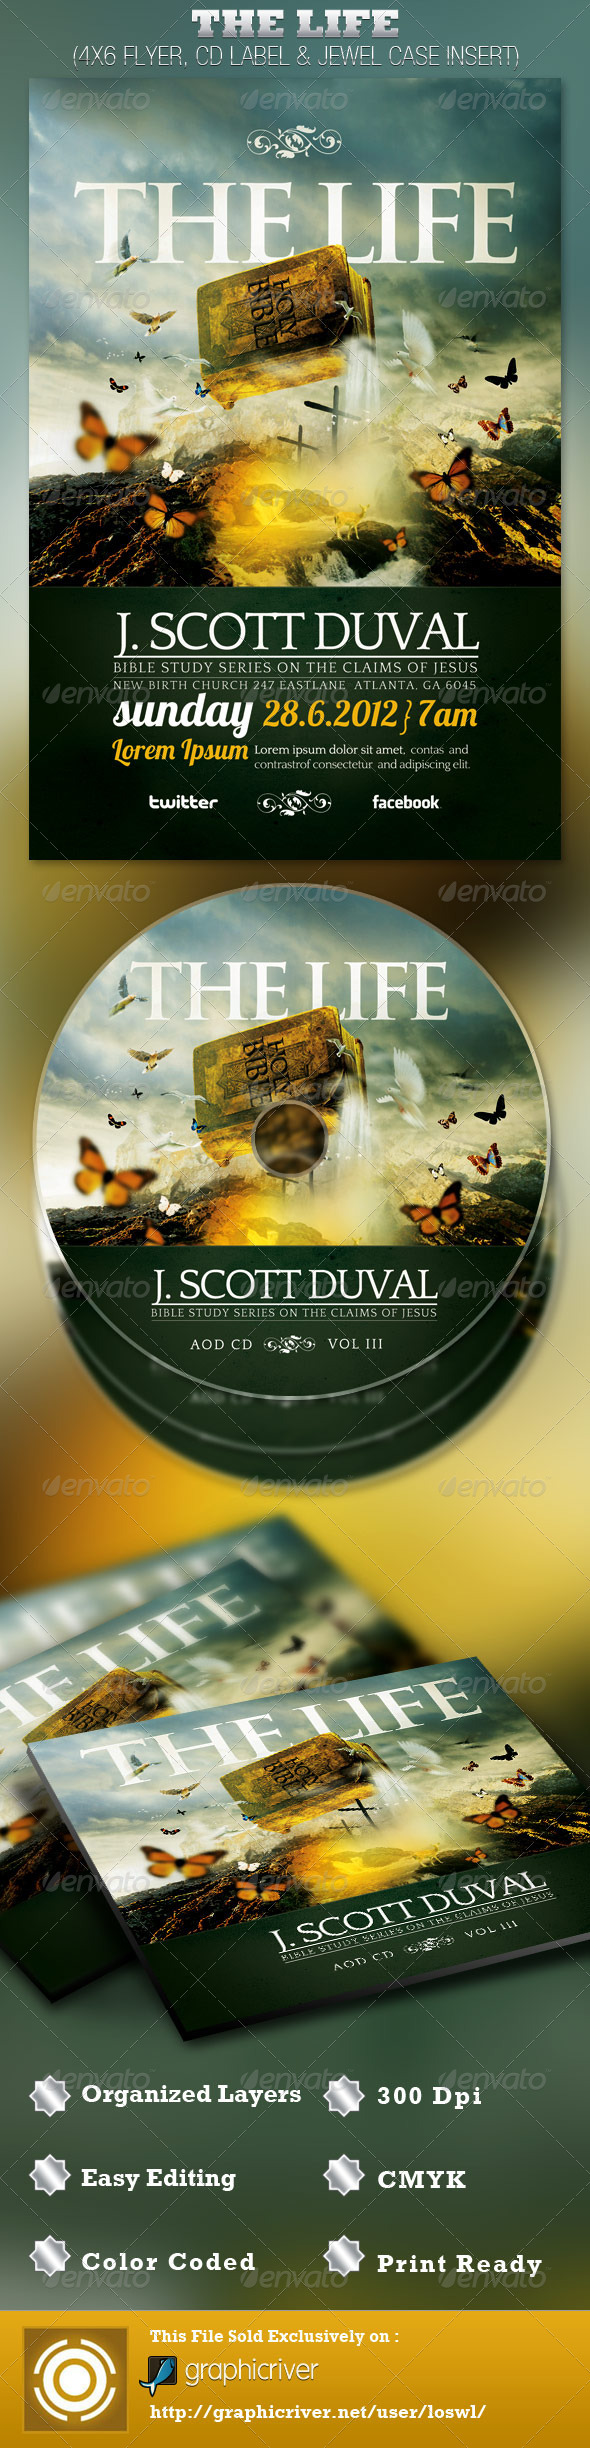 The Life Church Flyer and CD Template